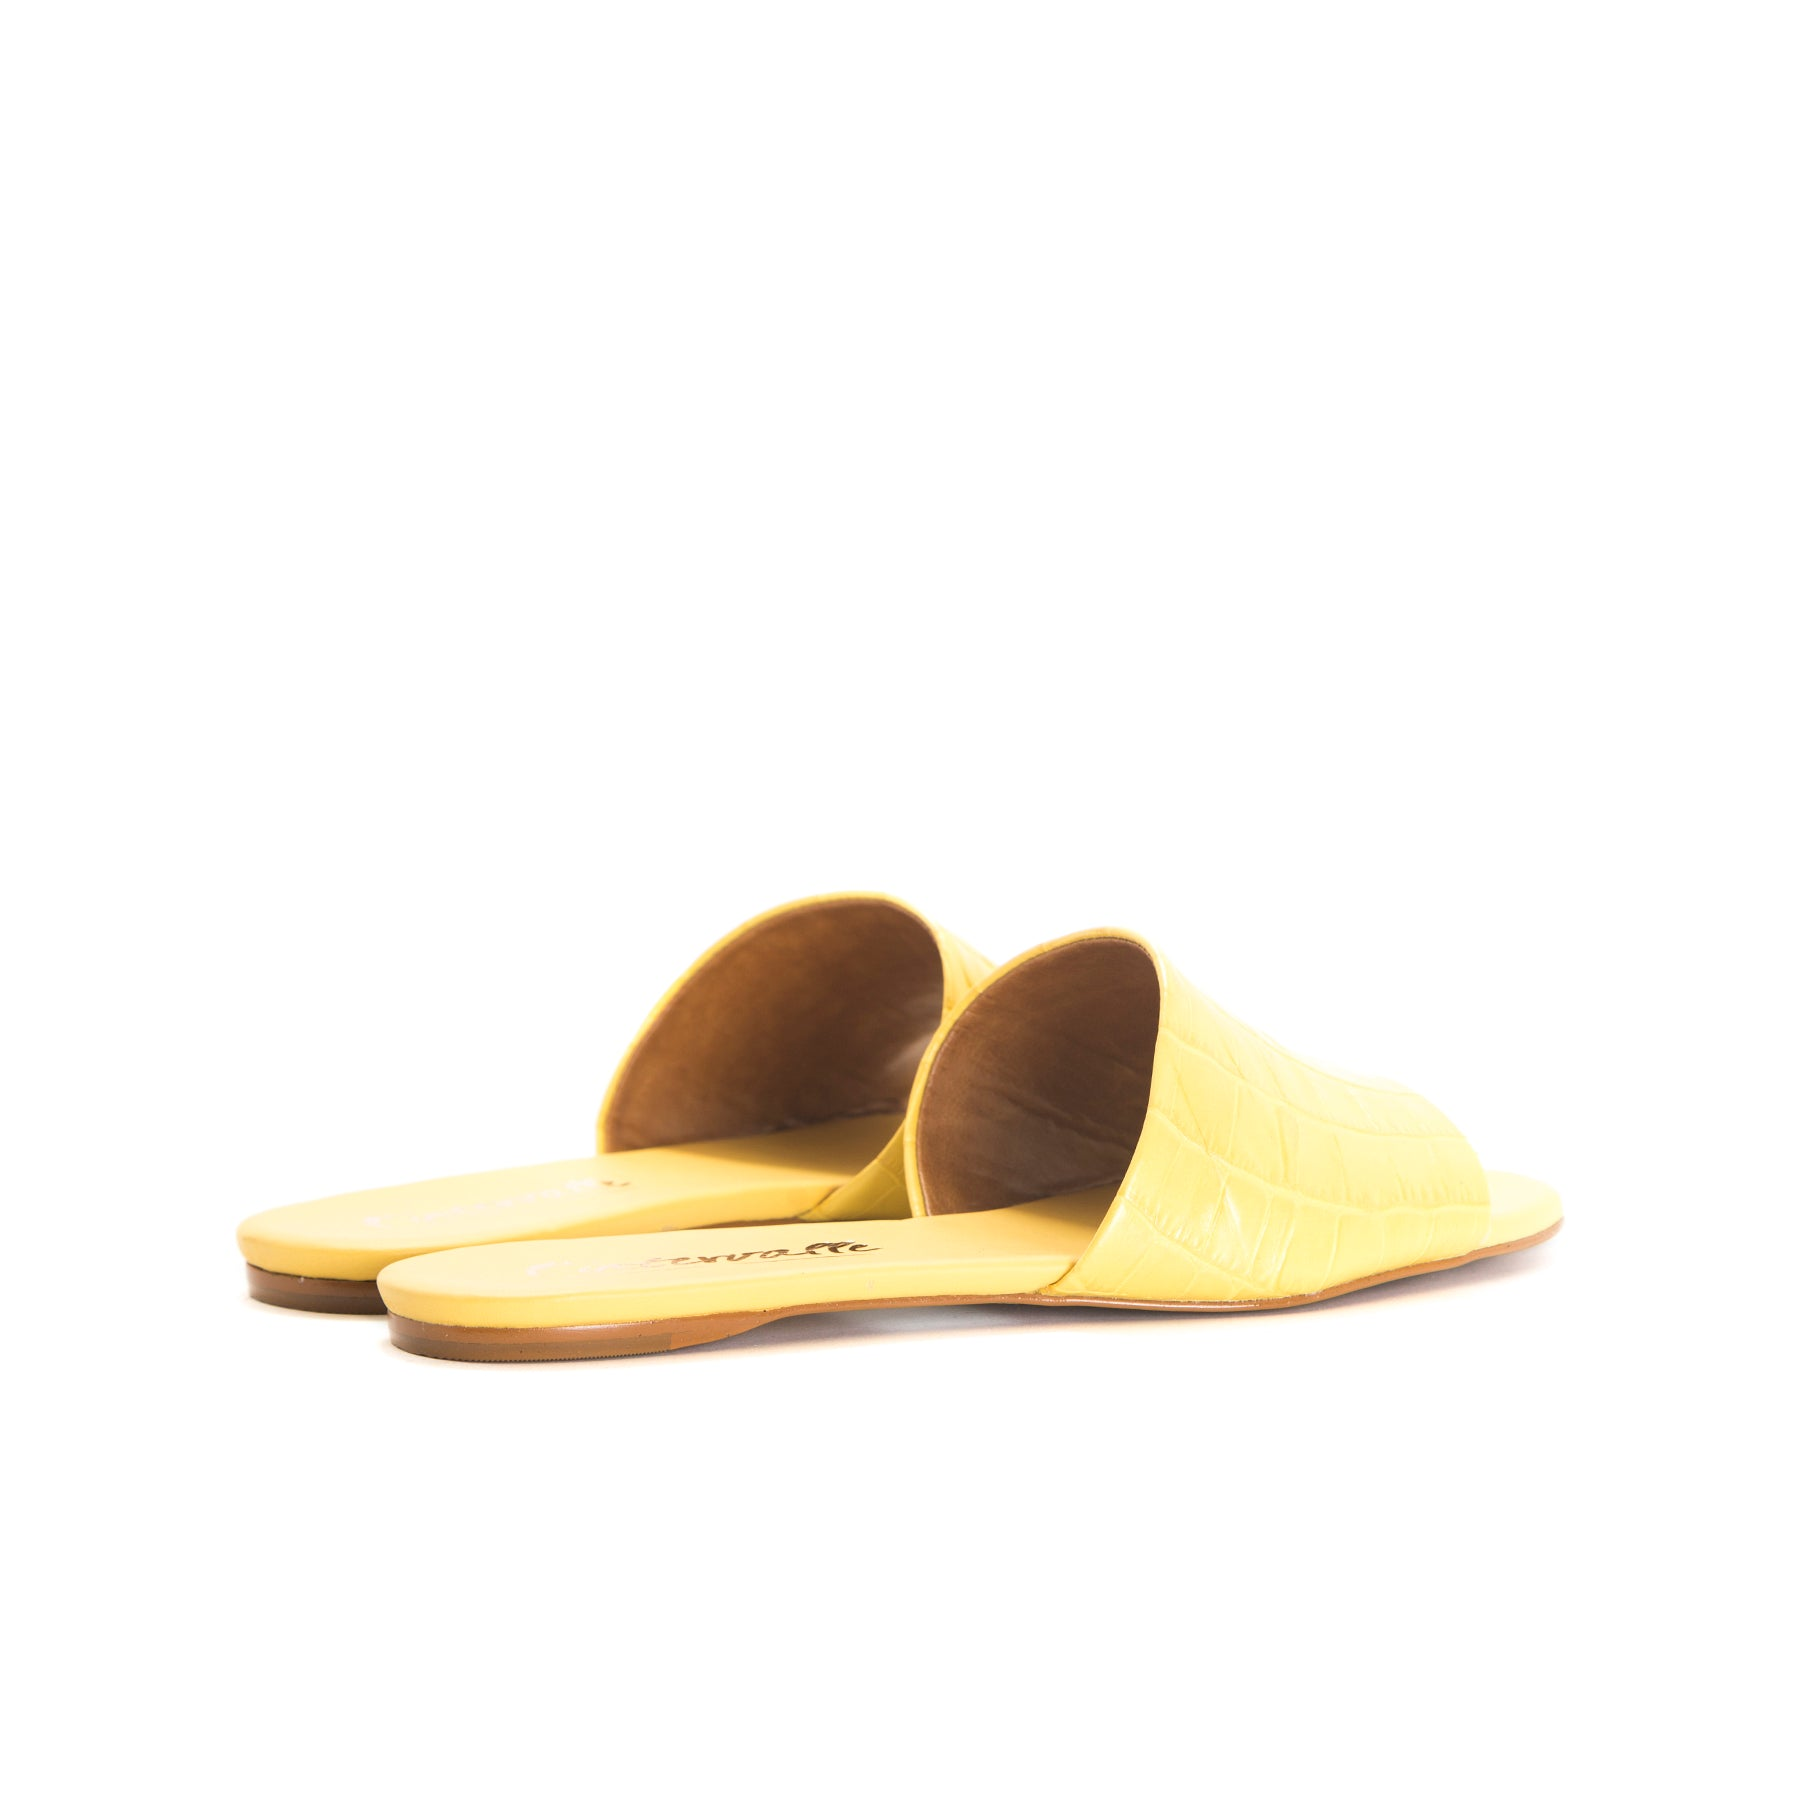 Varadero Melon Croco Leather Sandals